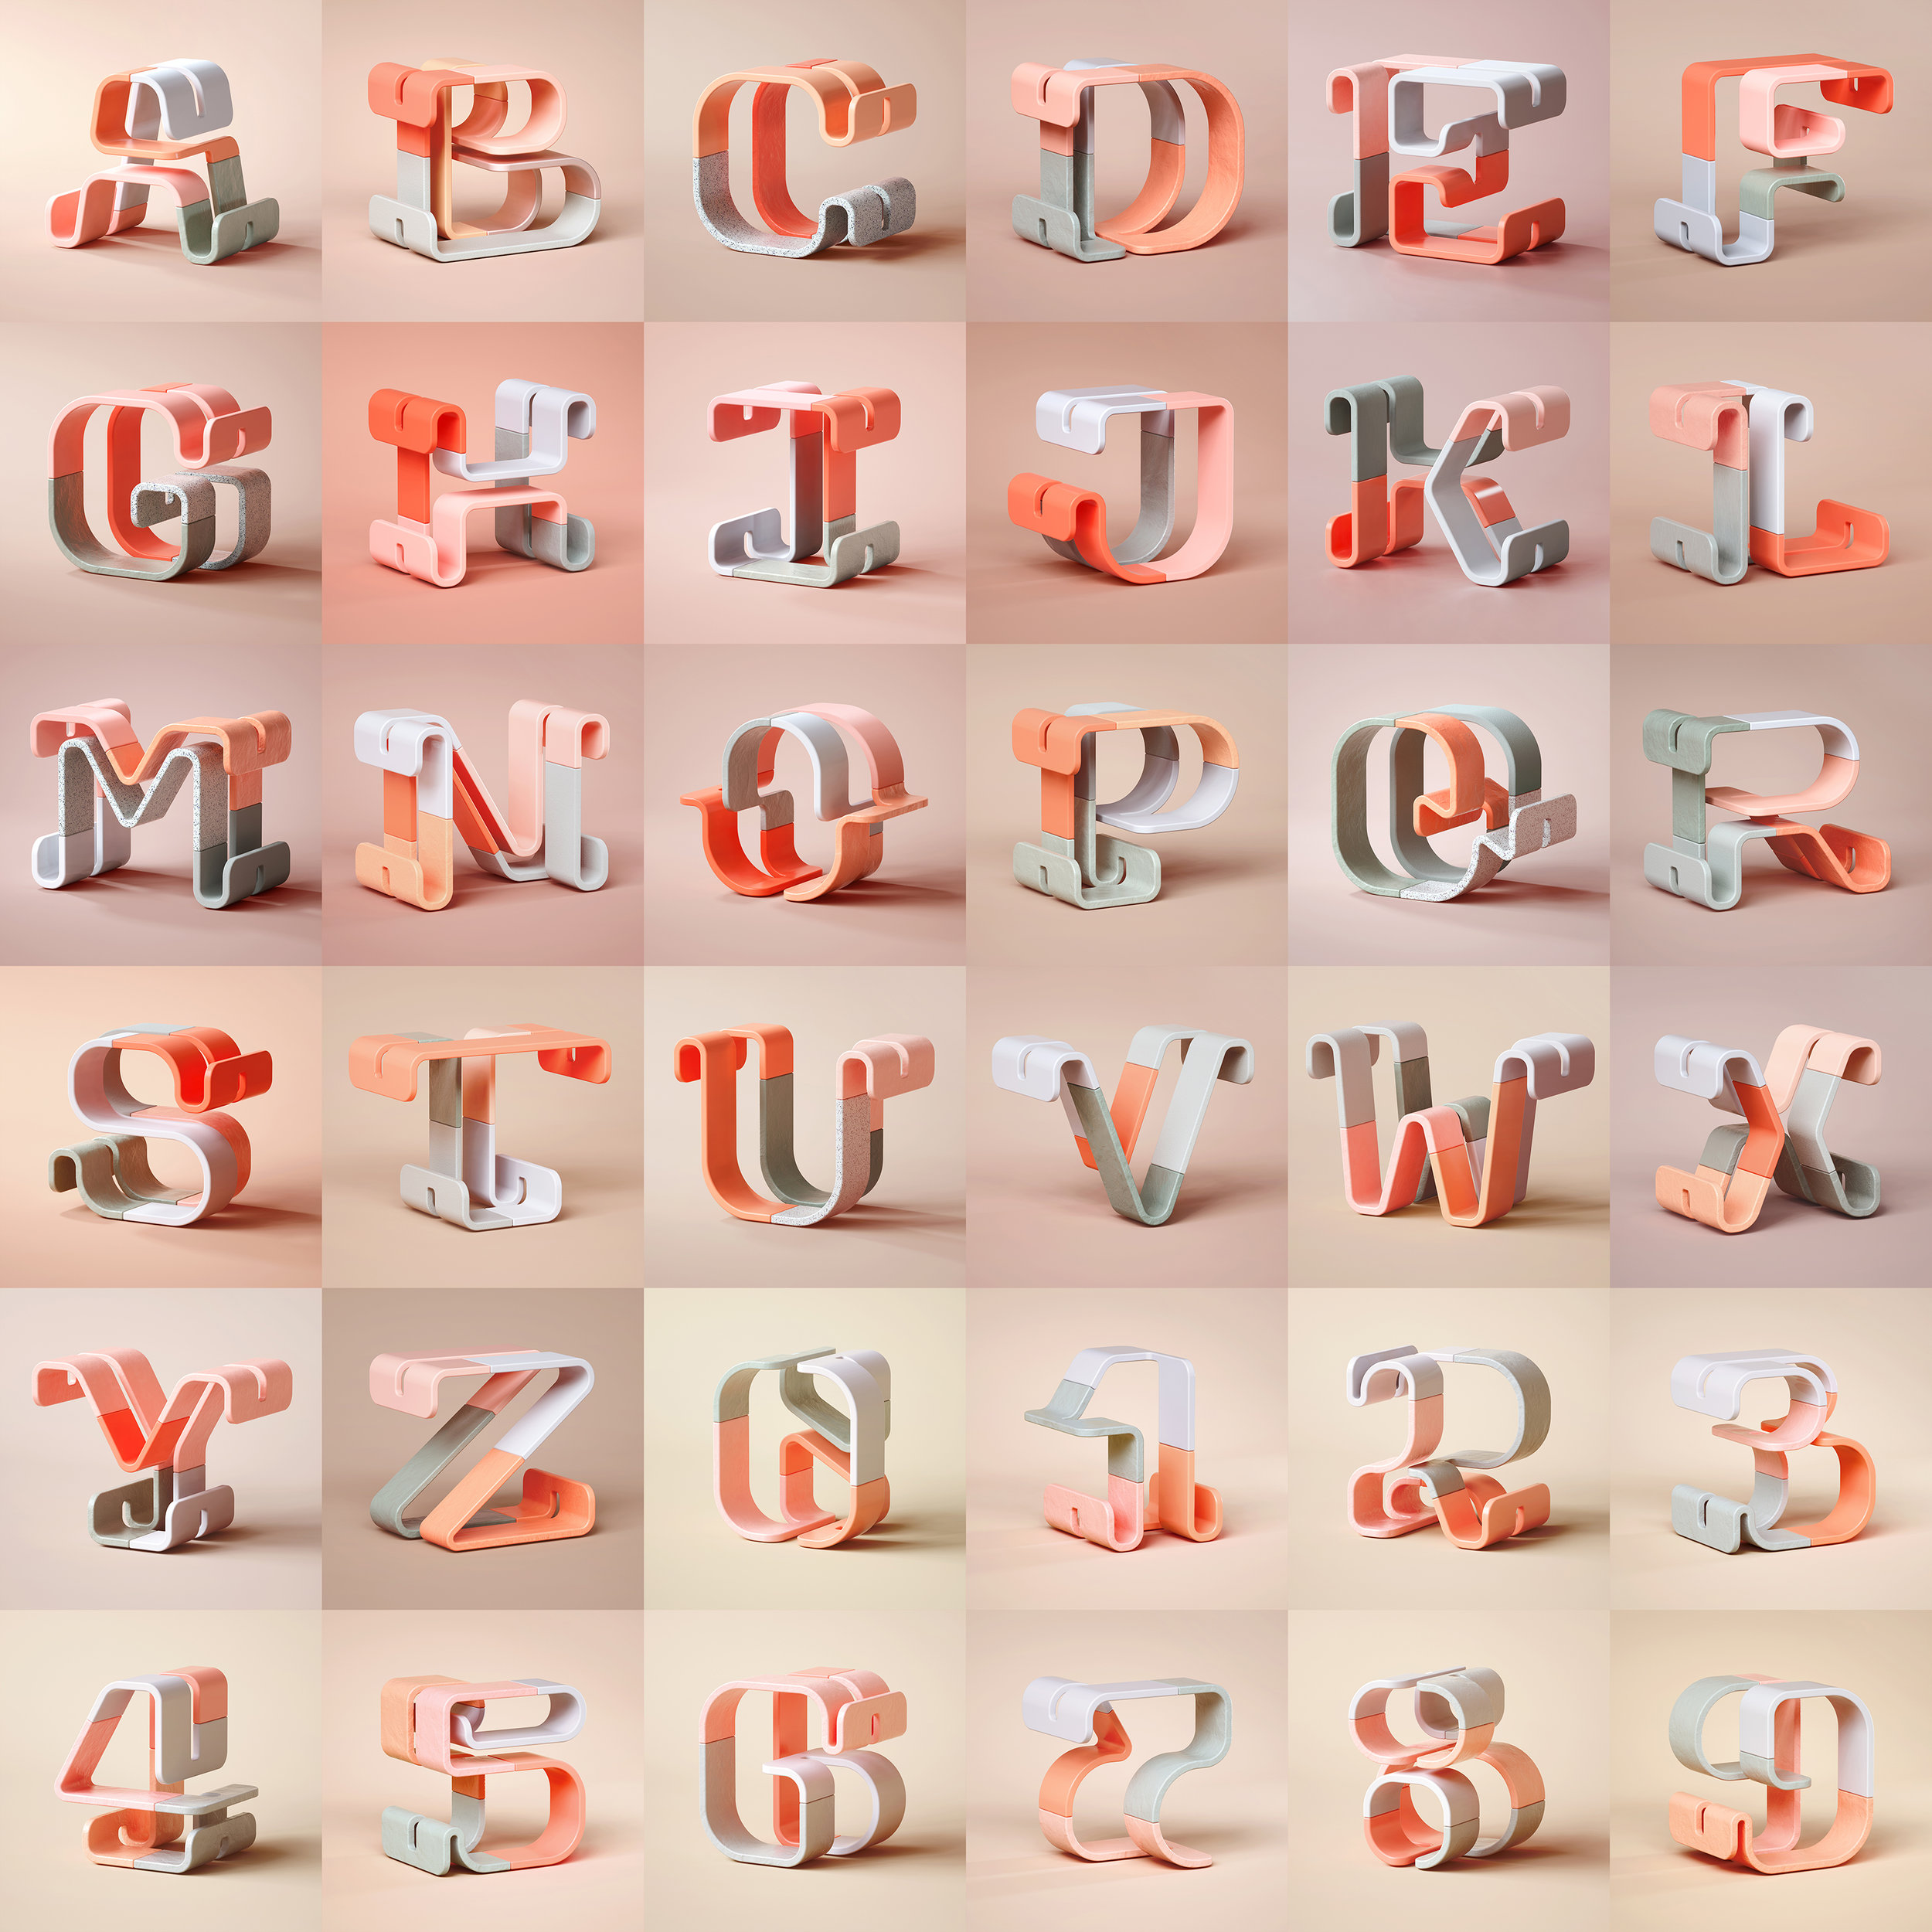 36 Days of Type 2019 - 3D Typeform complete set visuals.